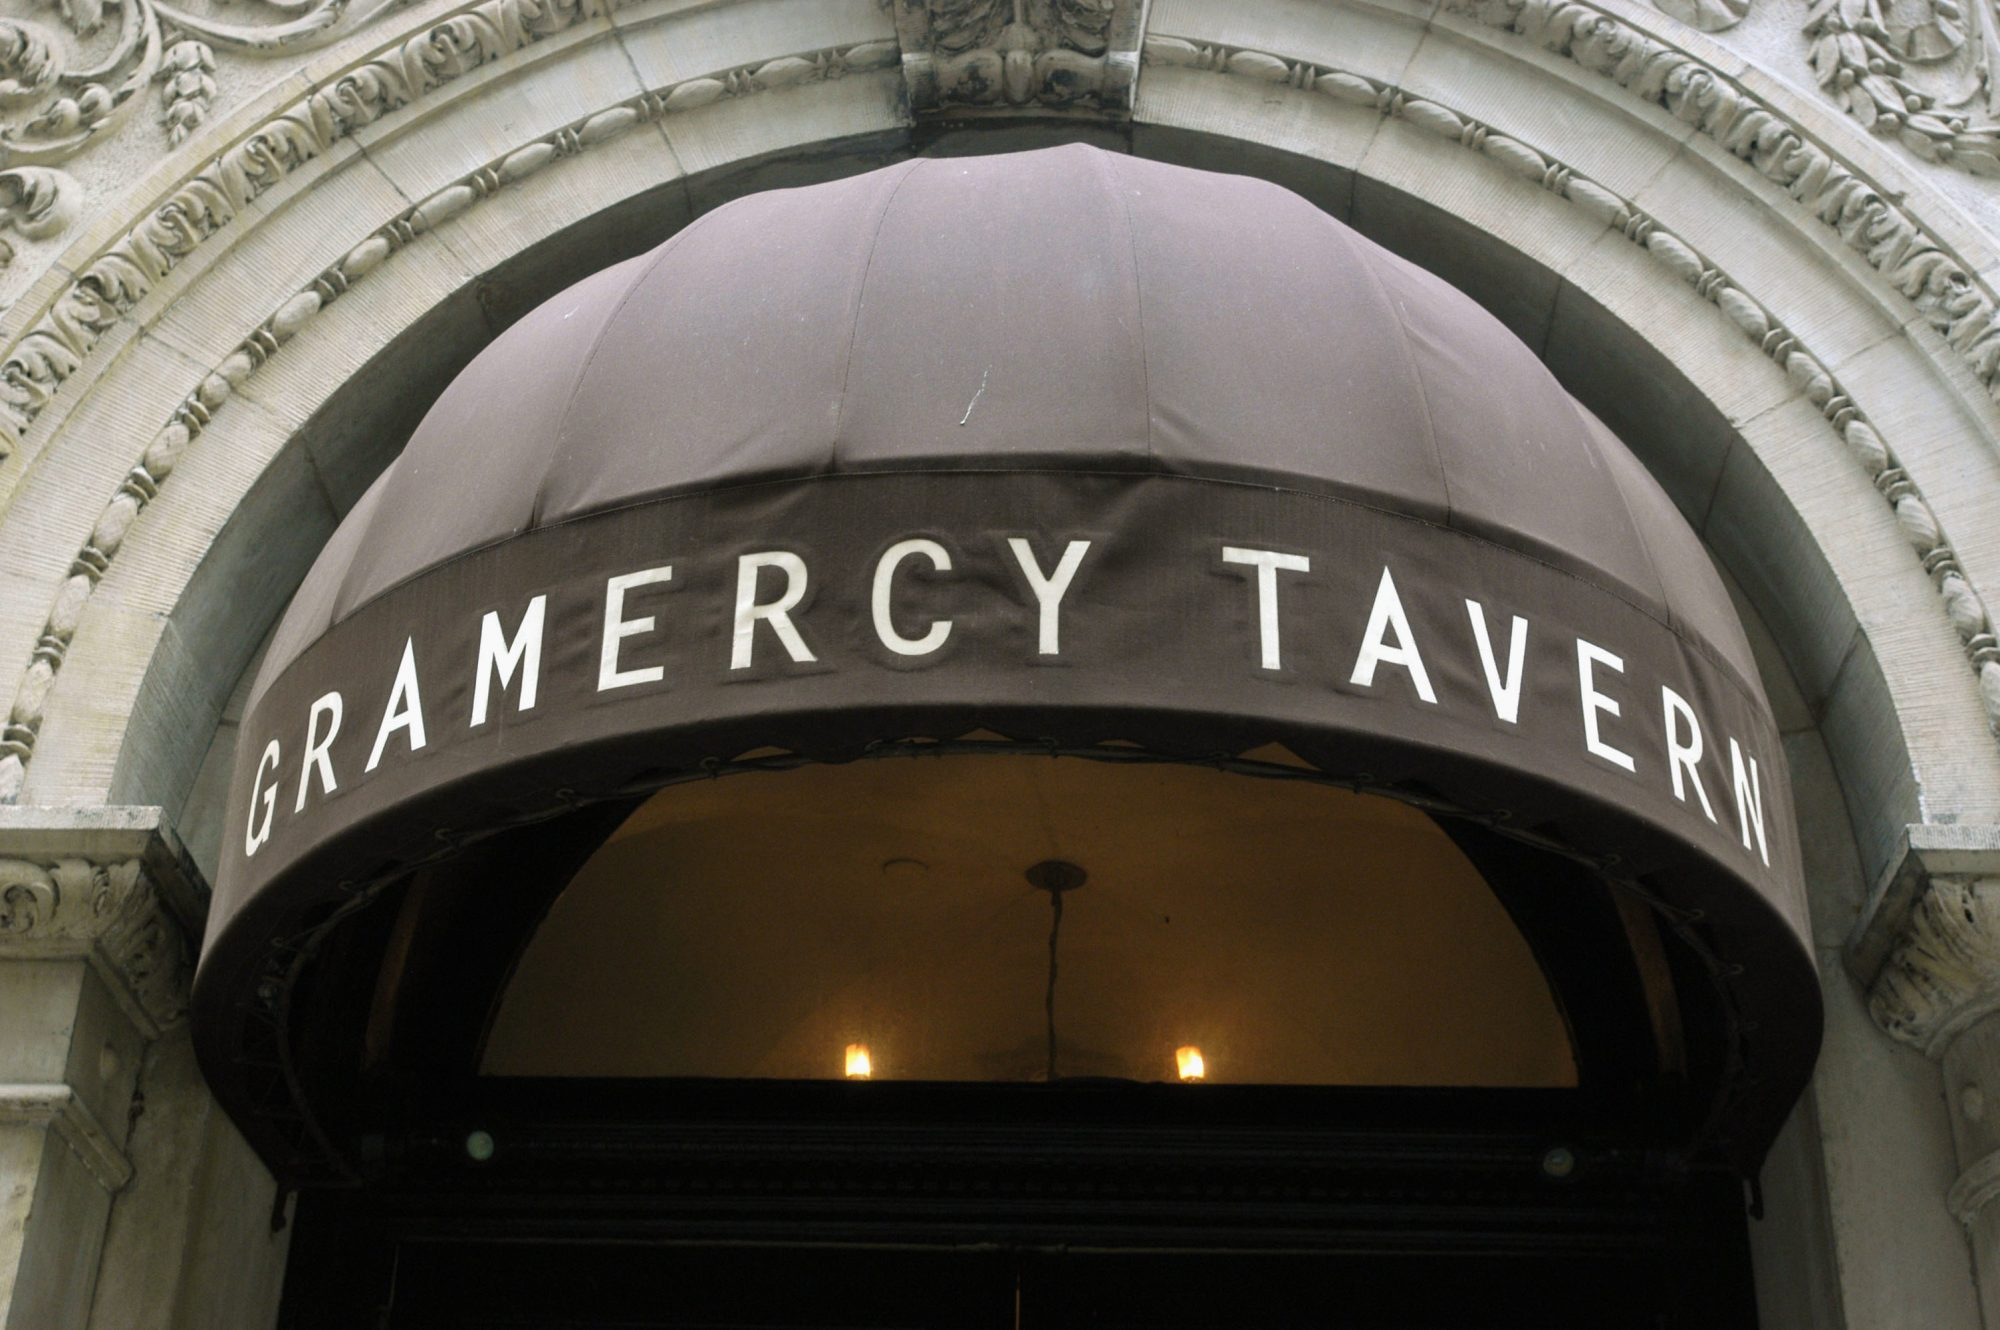 Gramercy Tavern Brings Back Alumni for Dinners Celebrating 25th Anniversary